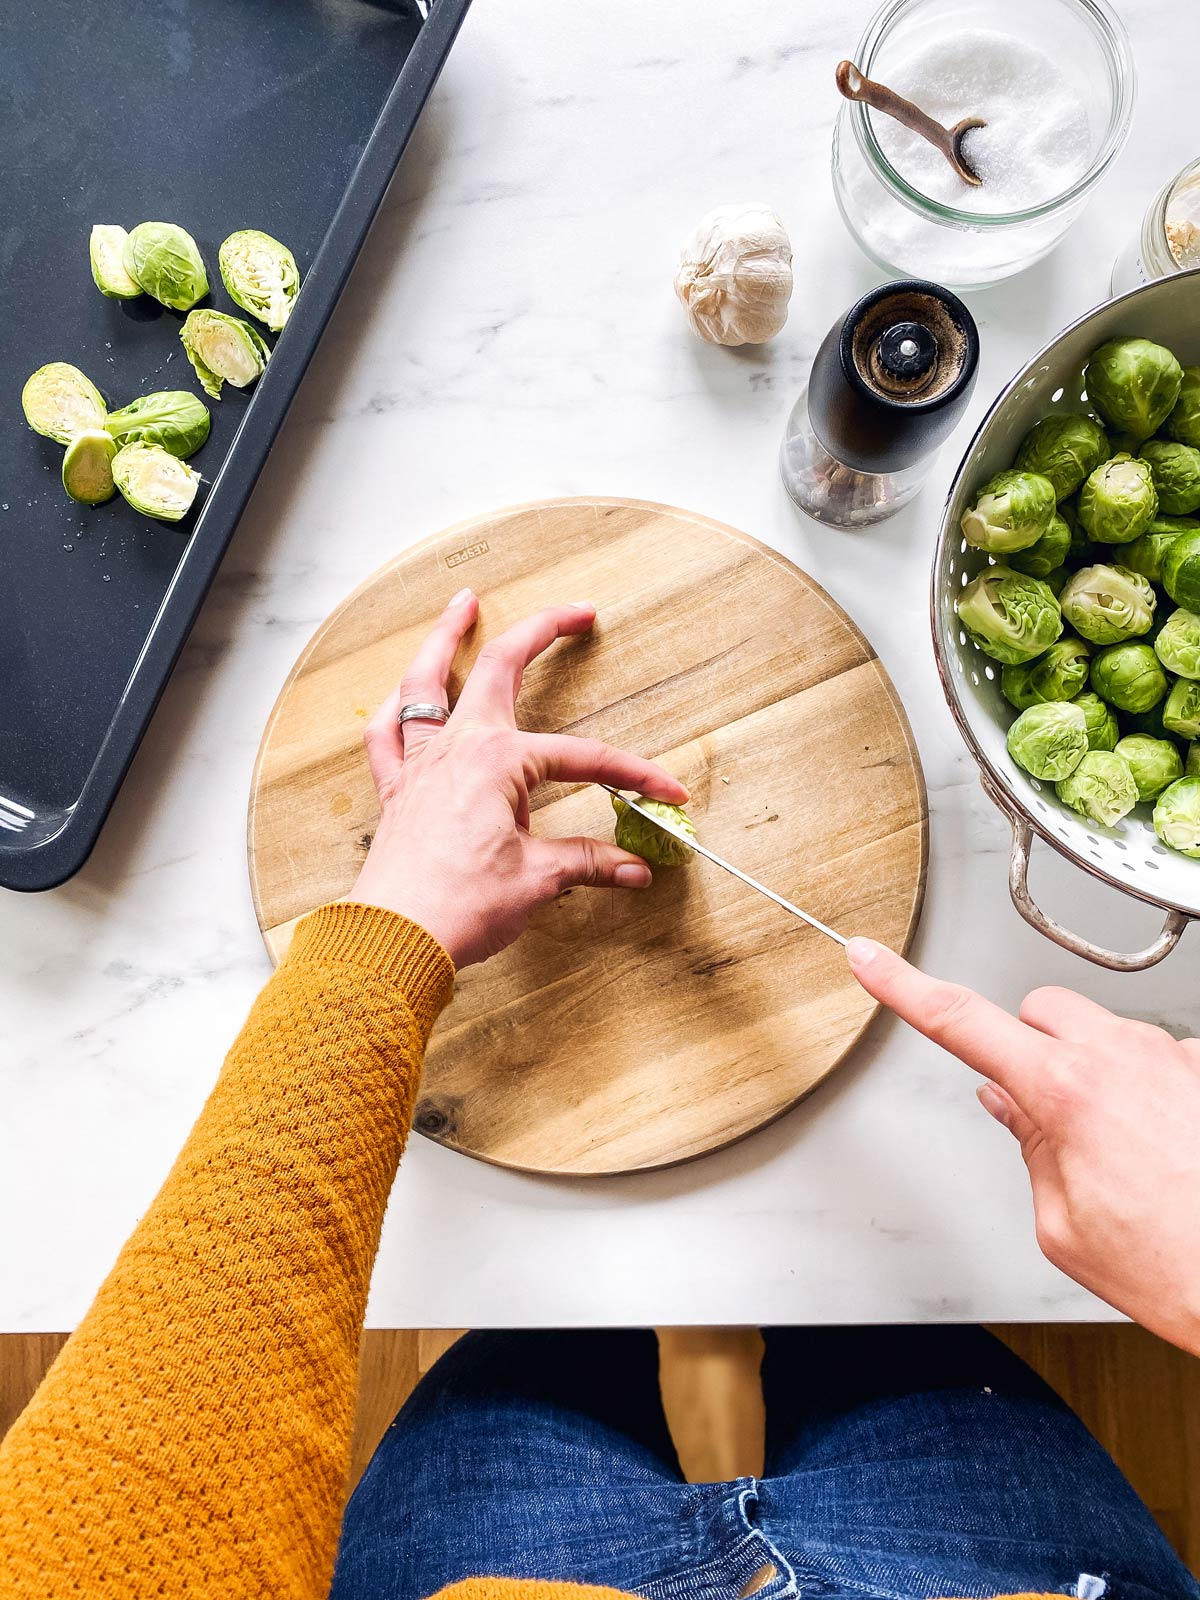 female hands slicing a Brussels sprout in half